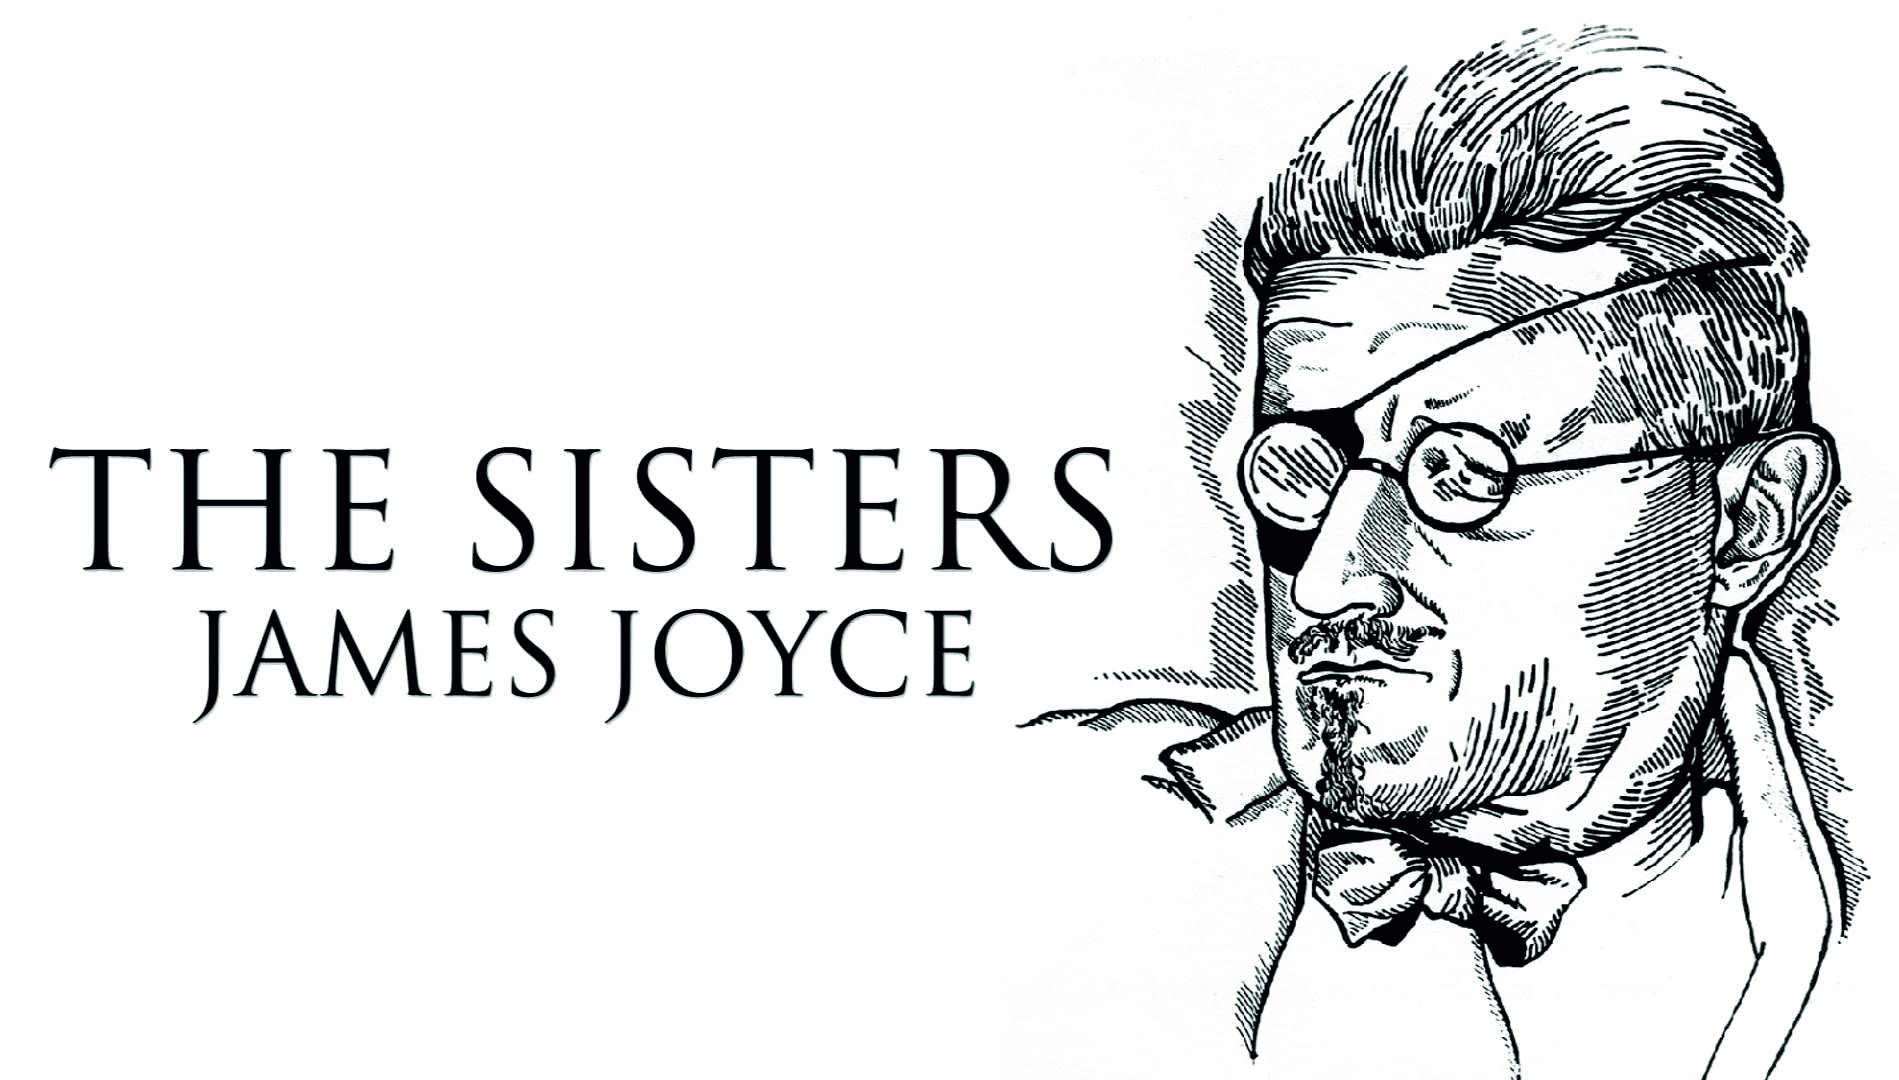 an examination of the novel dubliners by james joyce By james joyce - an examination of eveline in escape in dubliners - escape in dubliners in the novel dubliners, james joyce uses fictional stories to.